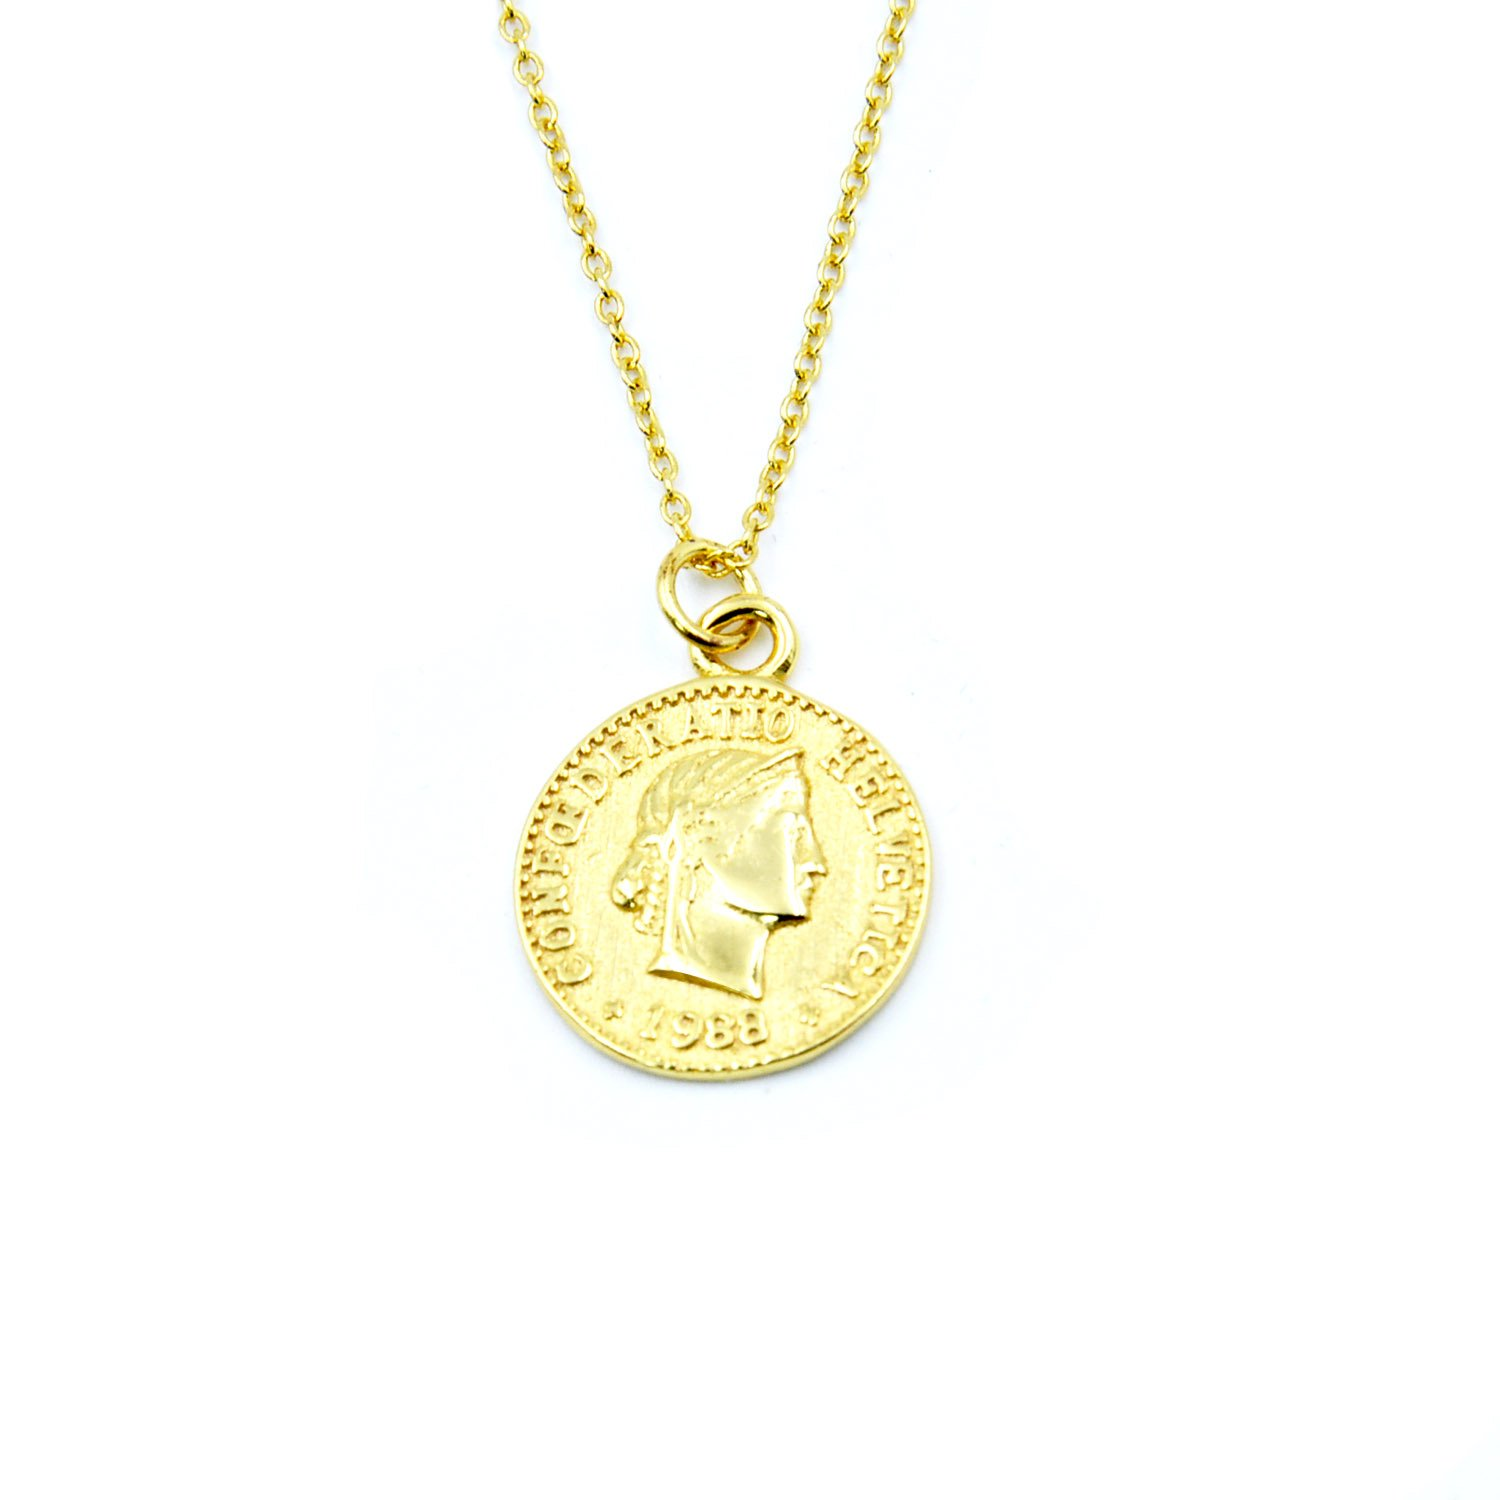 925 Sterling Silver Chain Necklace Jewelry Charm Gold Coin Pendent Simple Delicate Chic Fashion